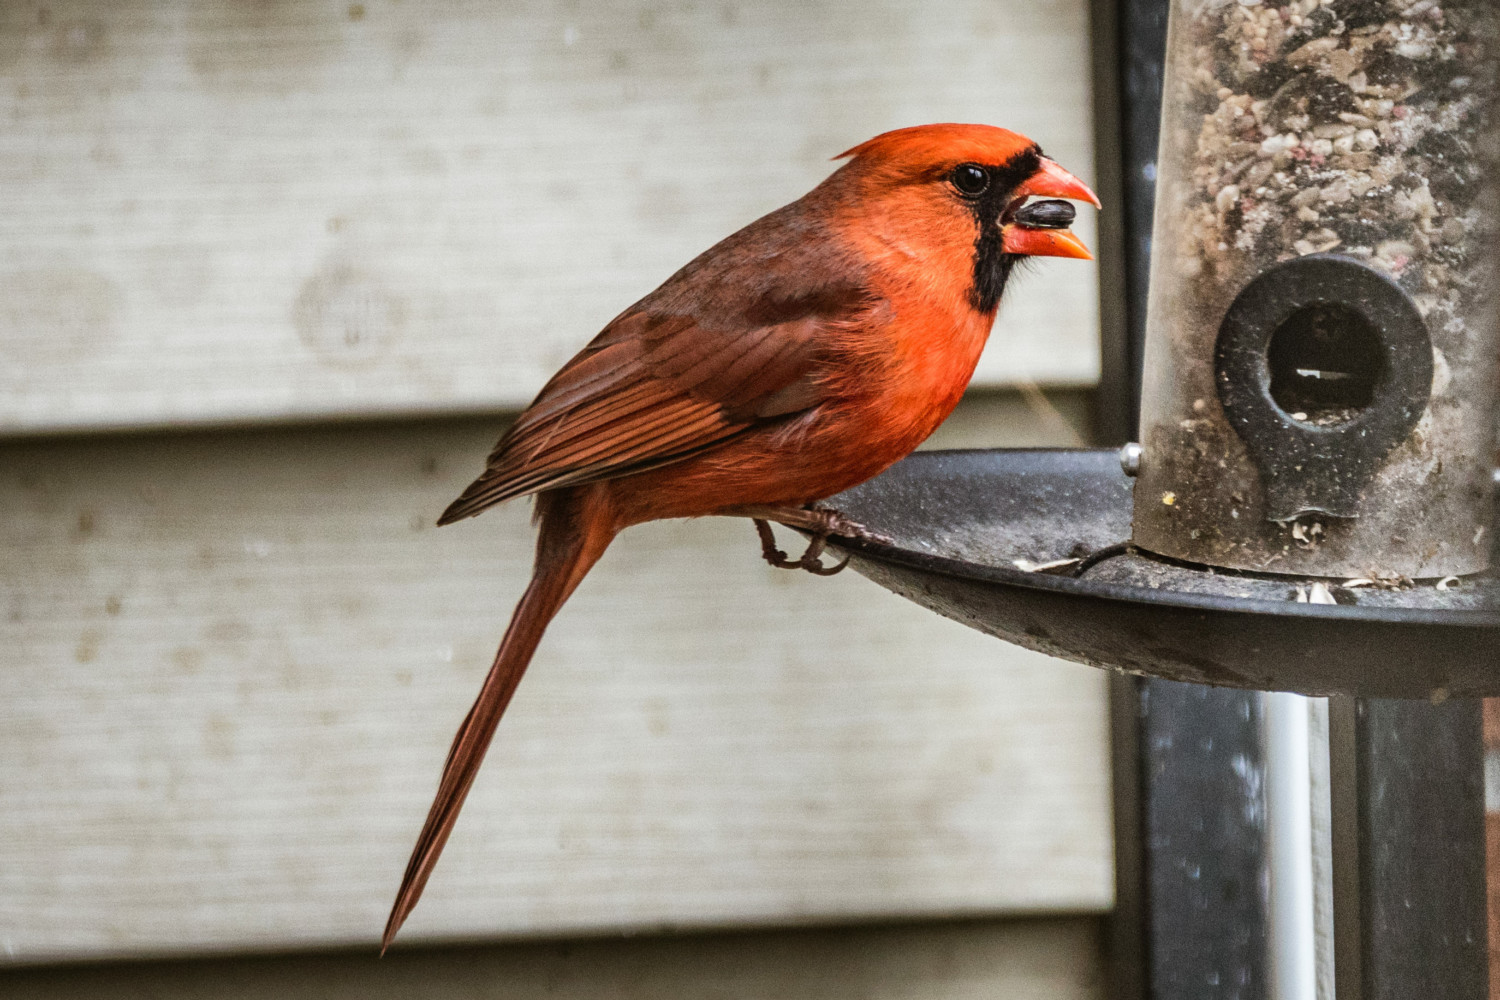 Northern Cardinal perched on bird feeder with seed